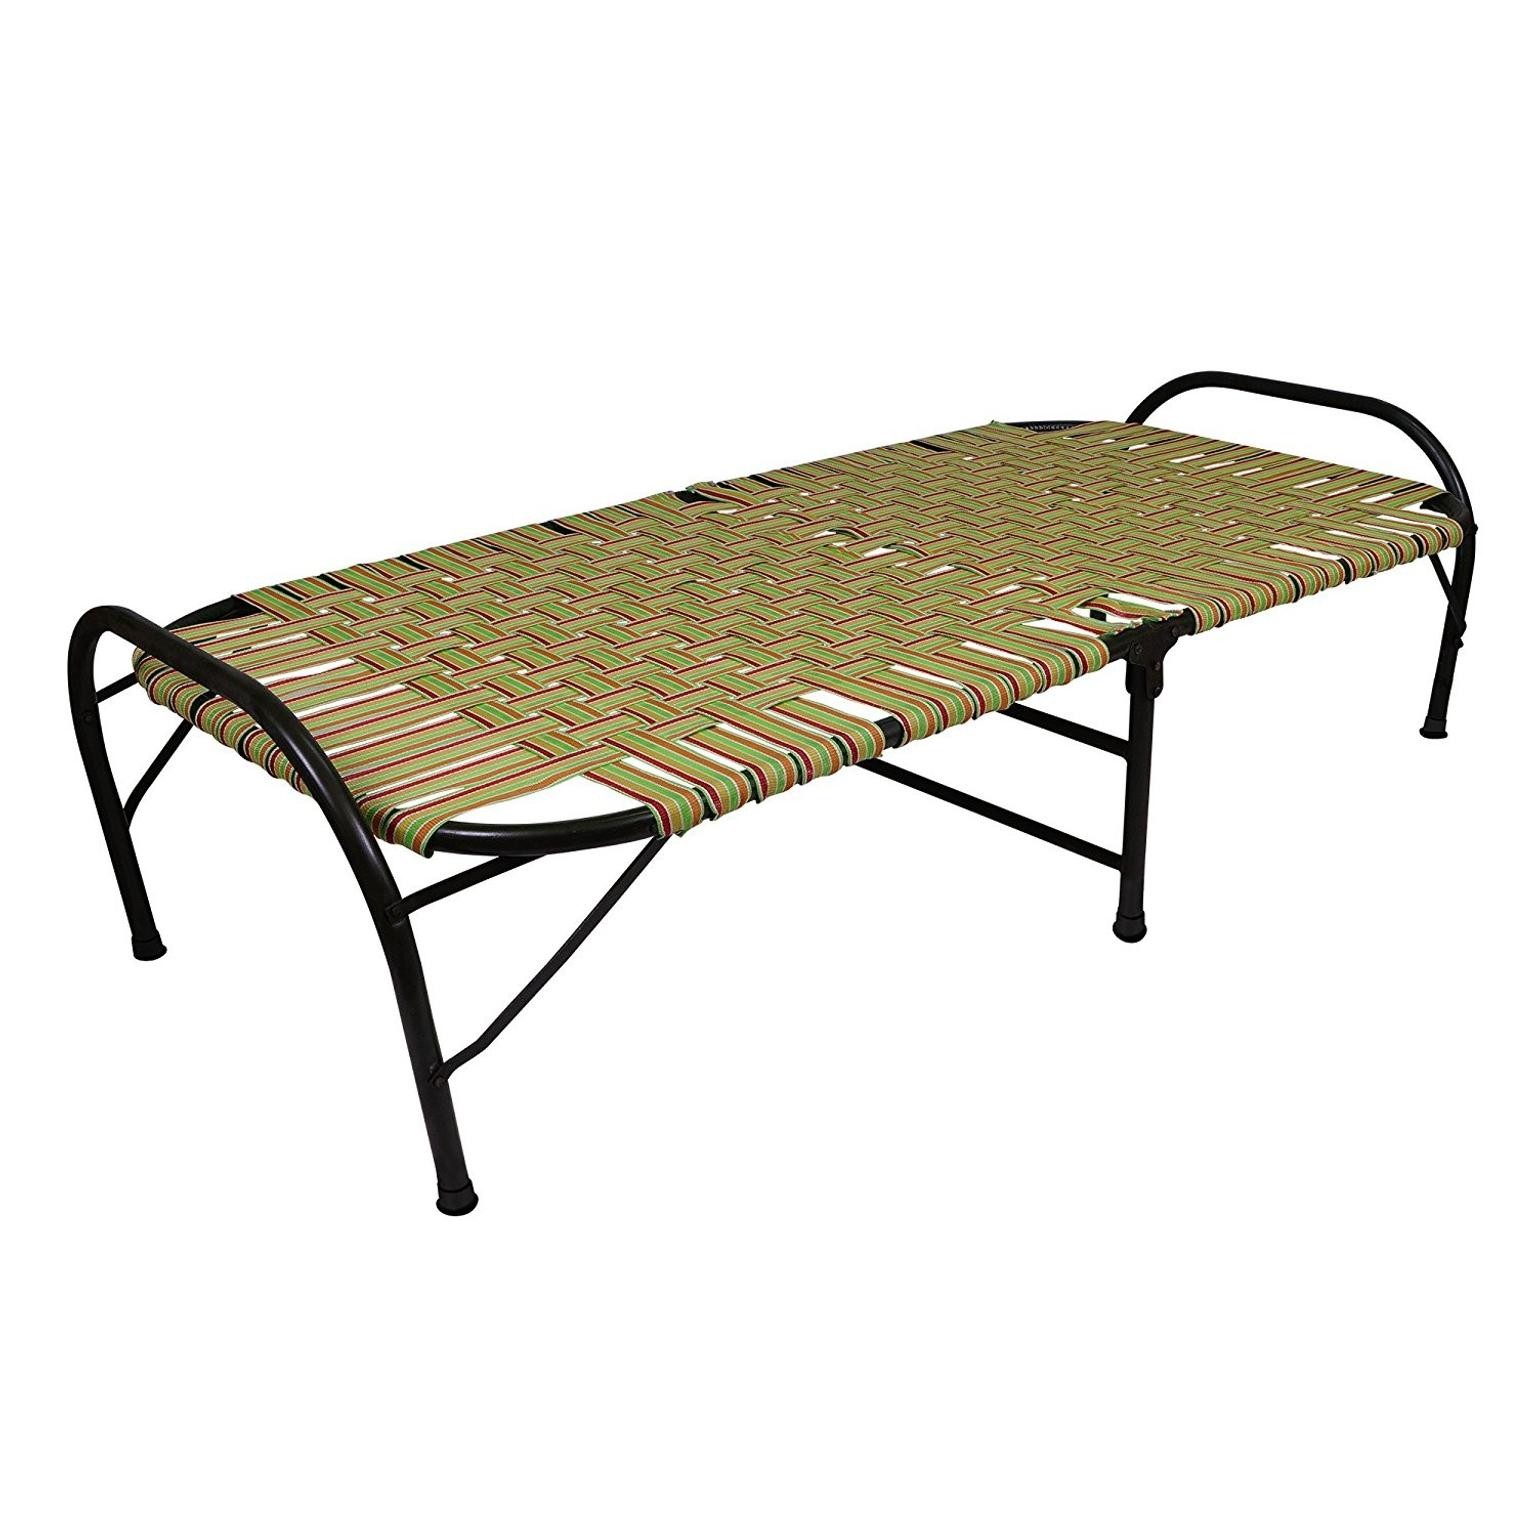 - FOLDING SINGLE BED INDIAN MANJA In B21 Birmingham Für 49,00 £ Zum